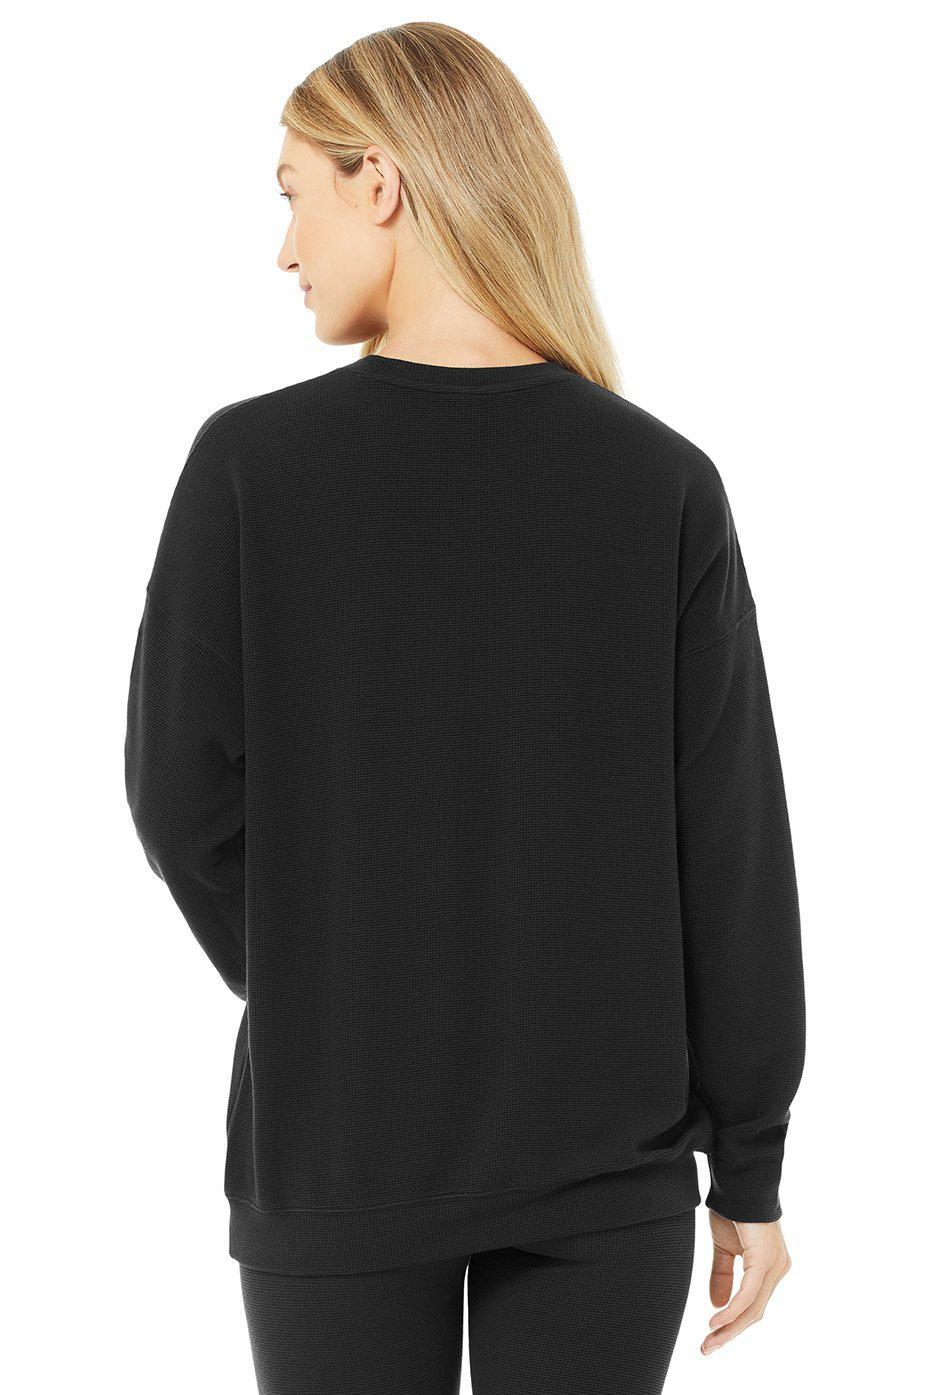 Micro Waffle Relaxation Pullover - Black 2